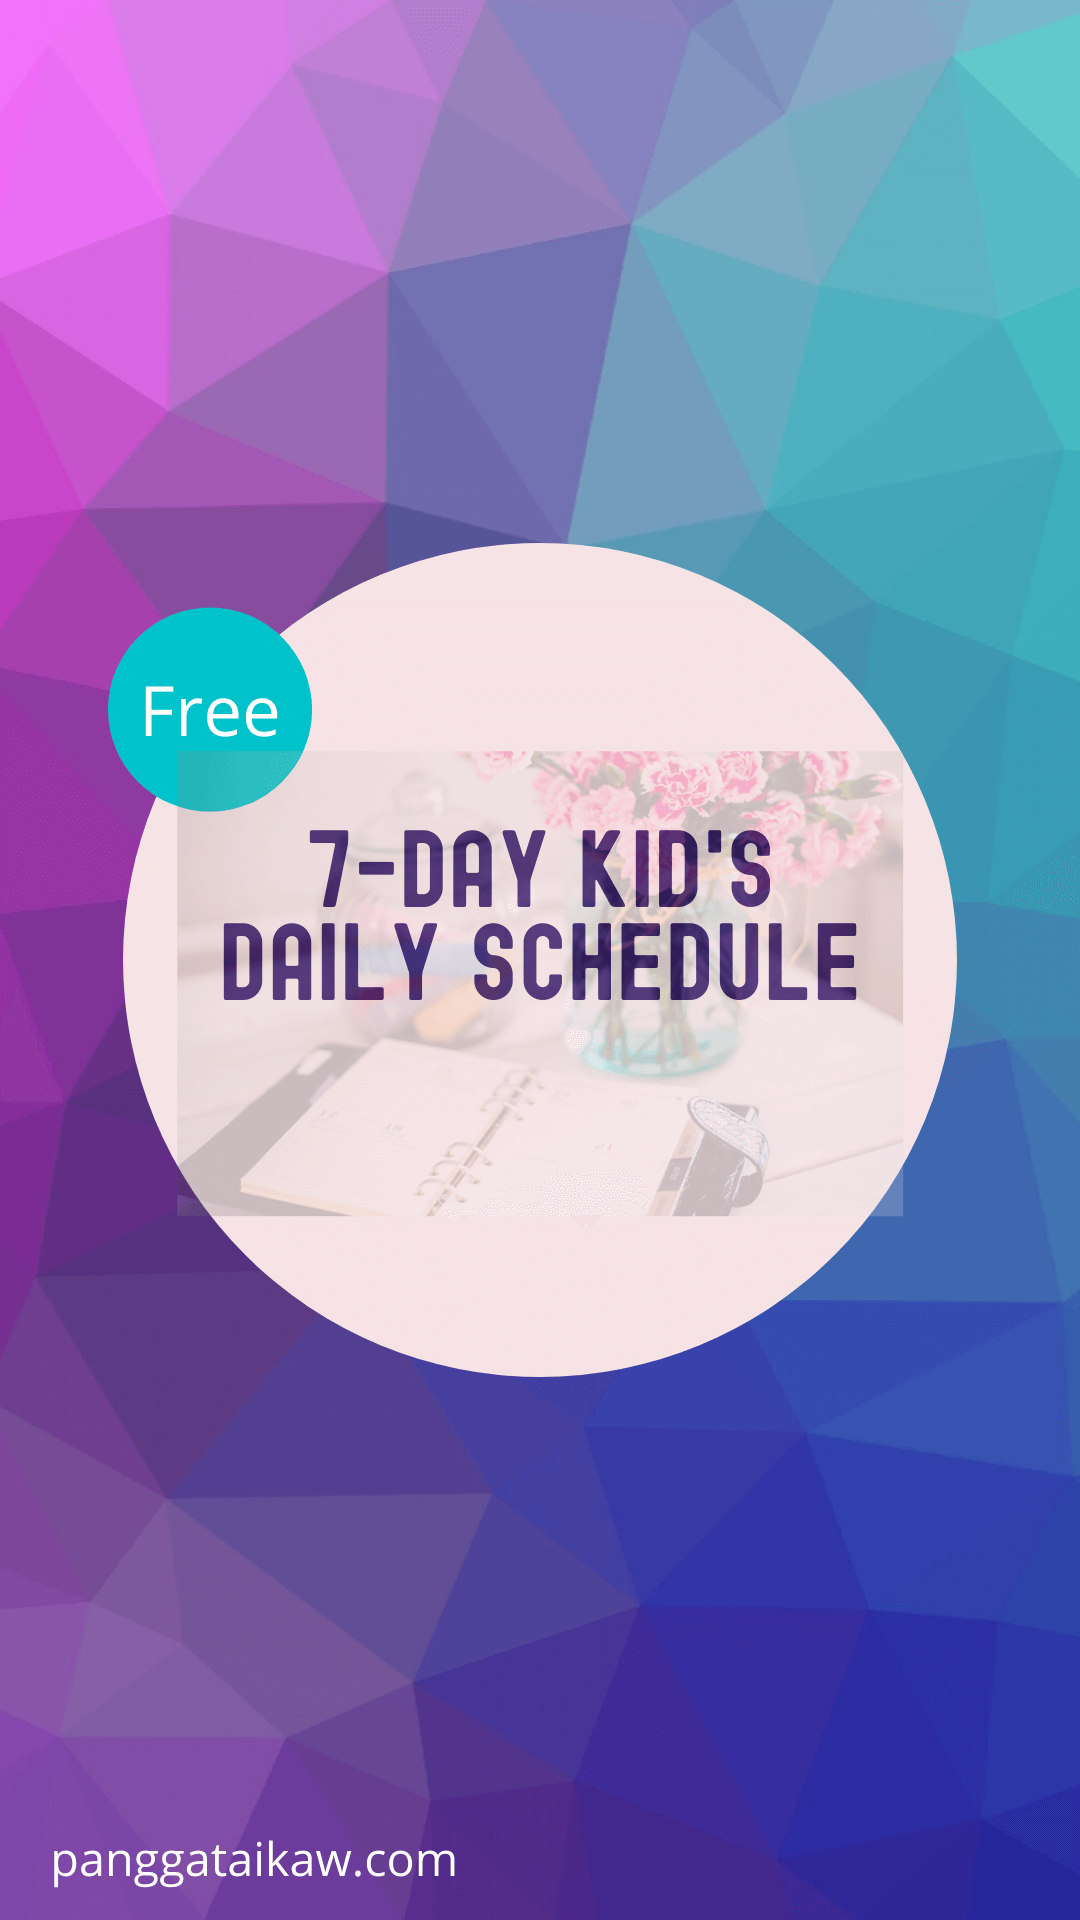 Free resources, kid's 7-day schedule